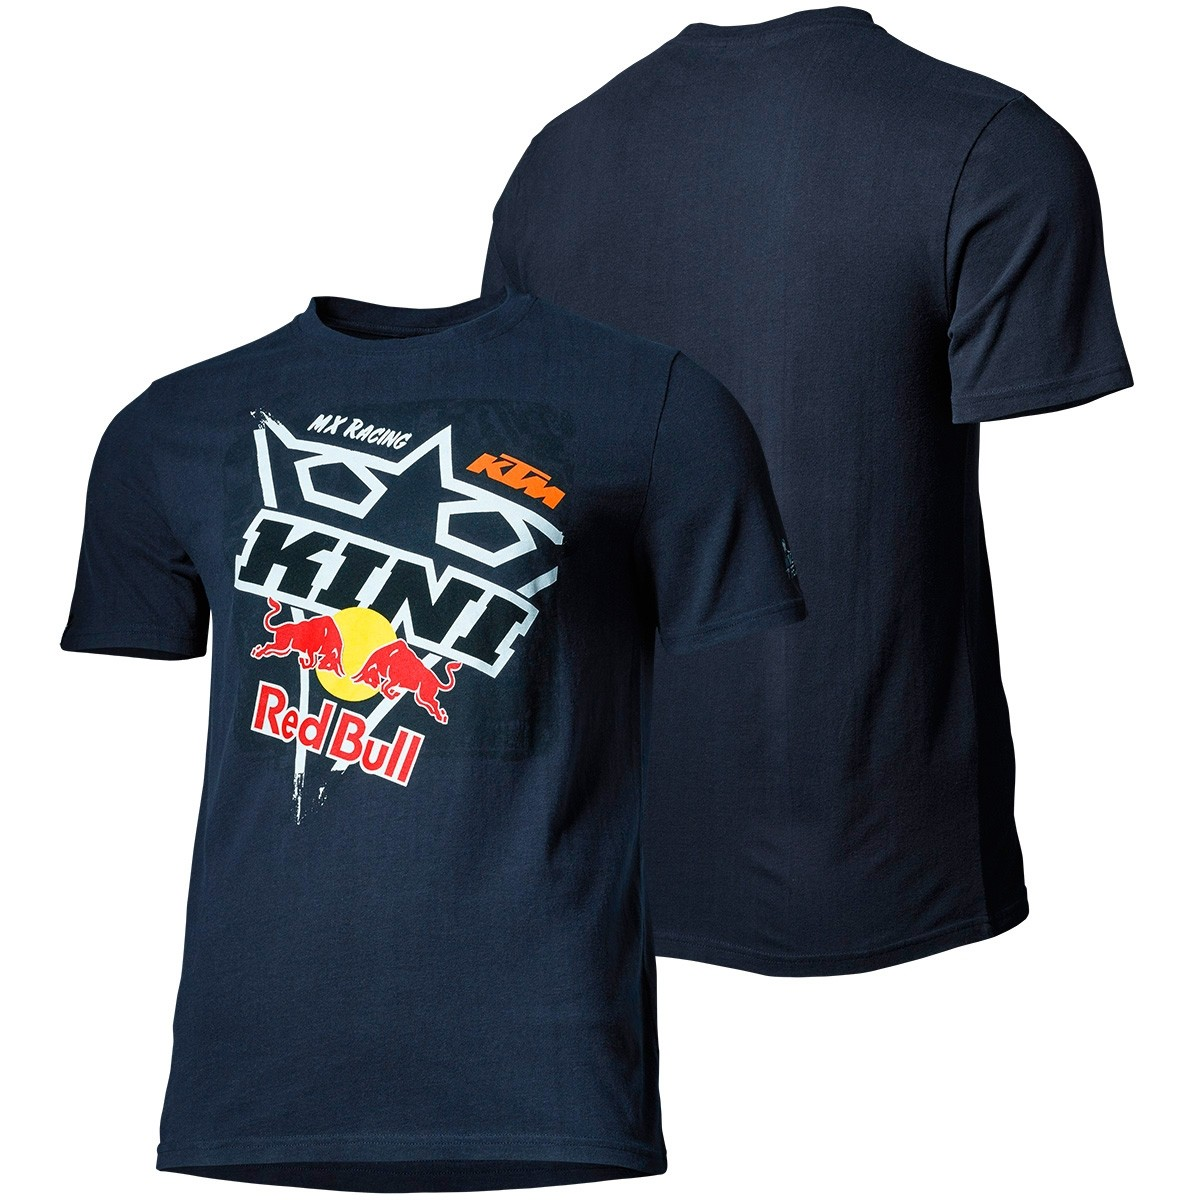 CAMISETA KTM KINI RED BULL SQUARE TEE DARK BLUE